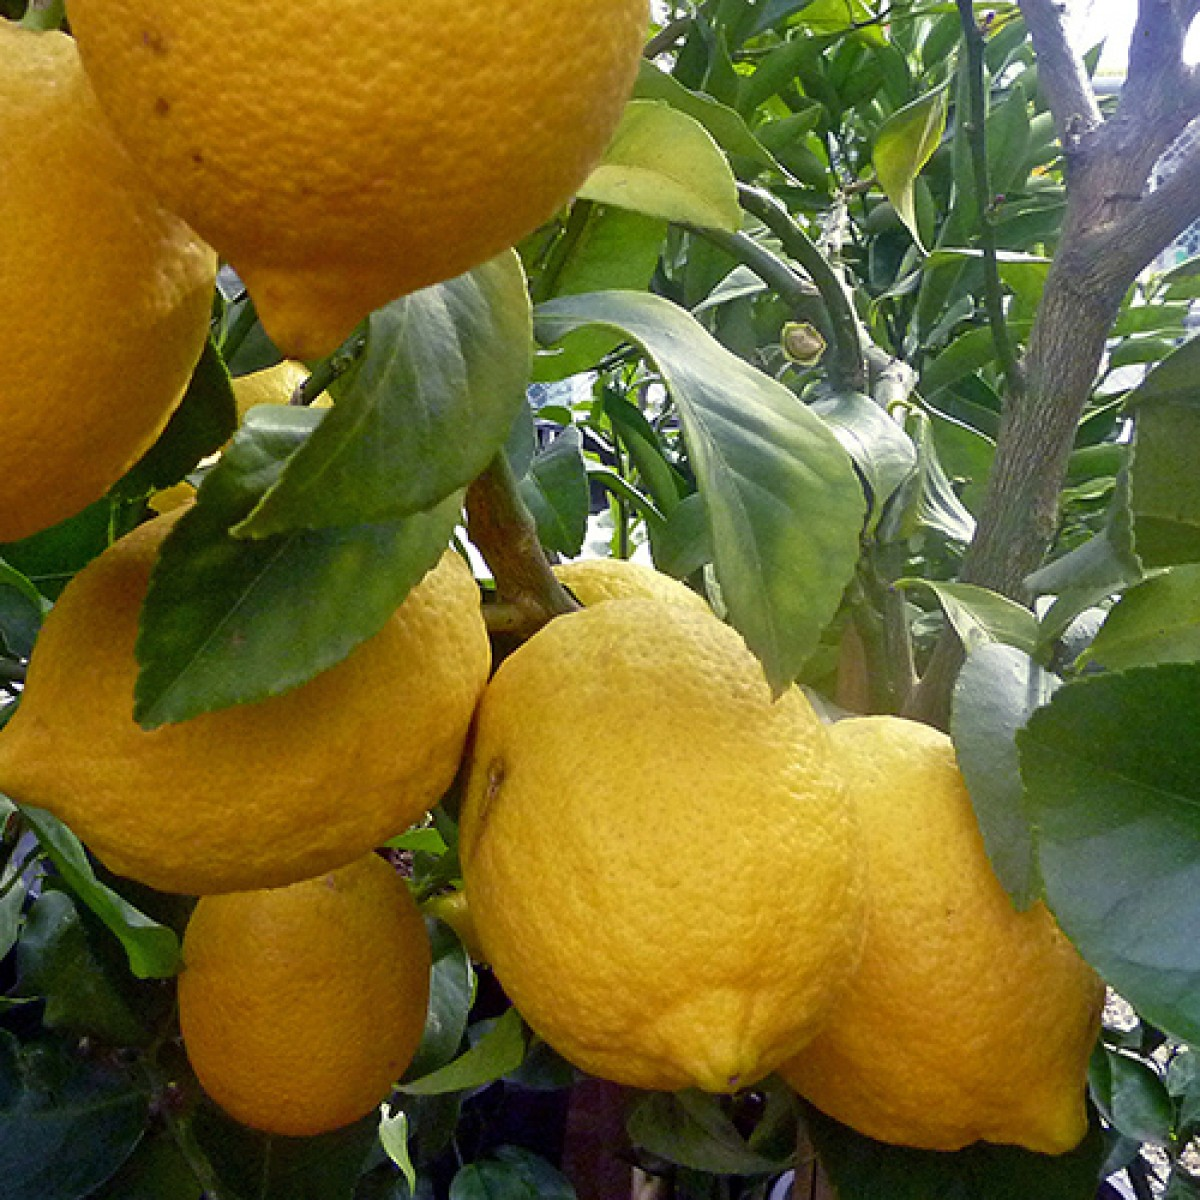 Growing Lemon Trees In Containers